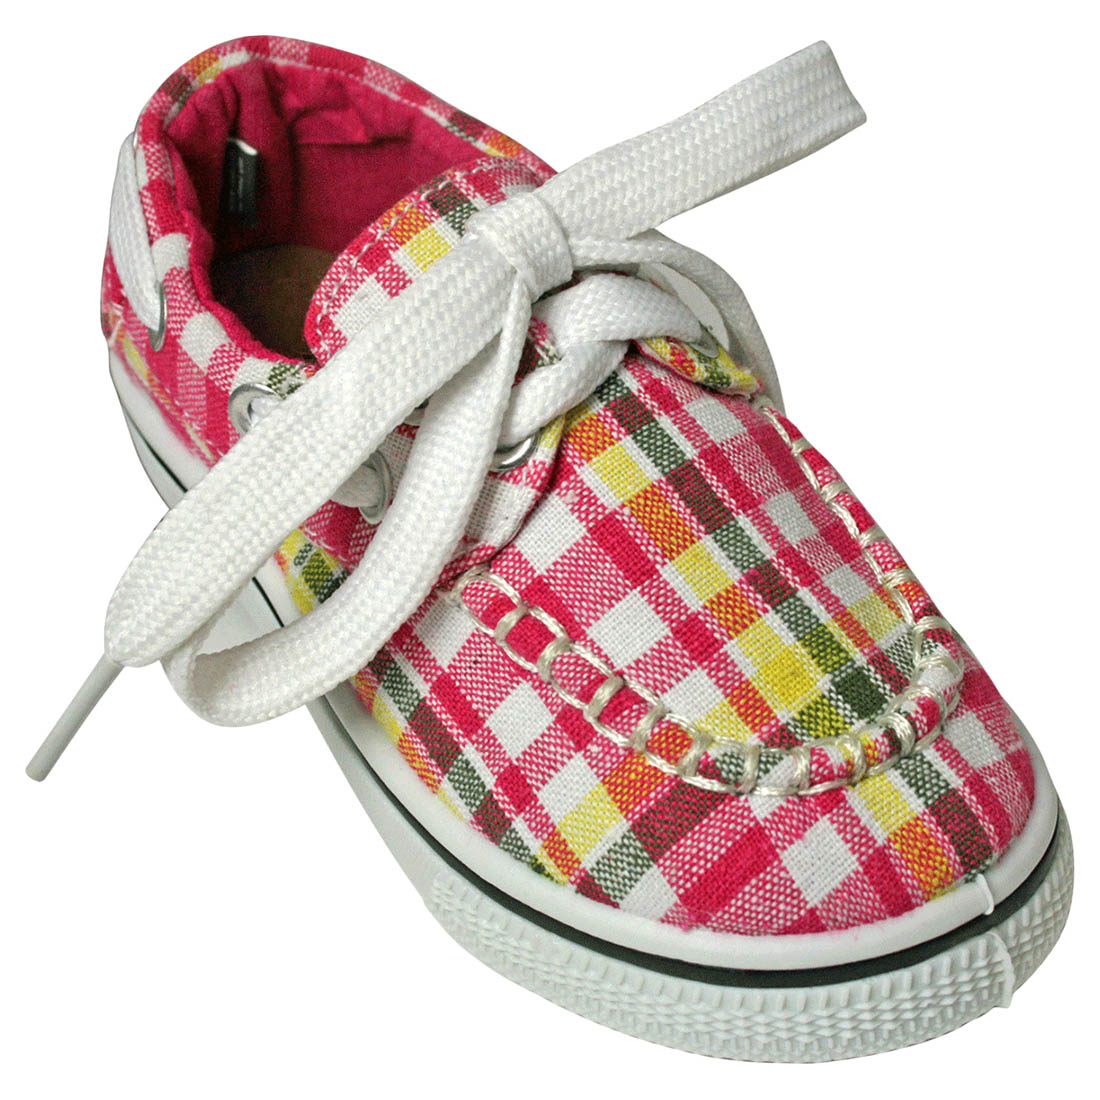 Toddlers' Kaymann Boat Shoes